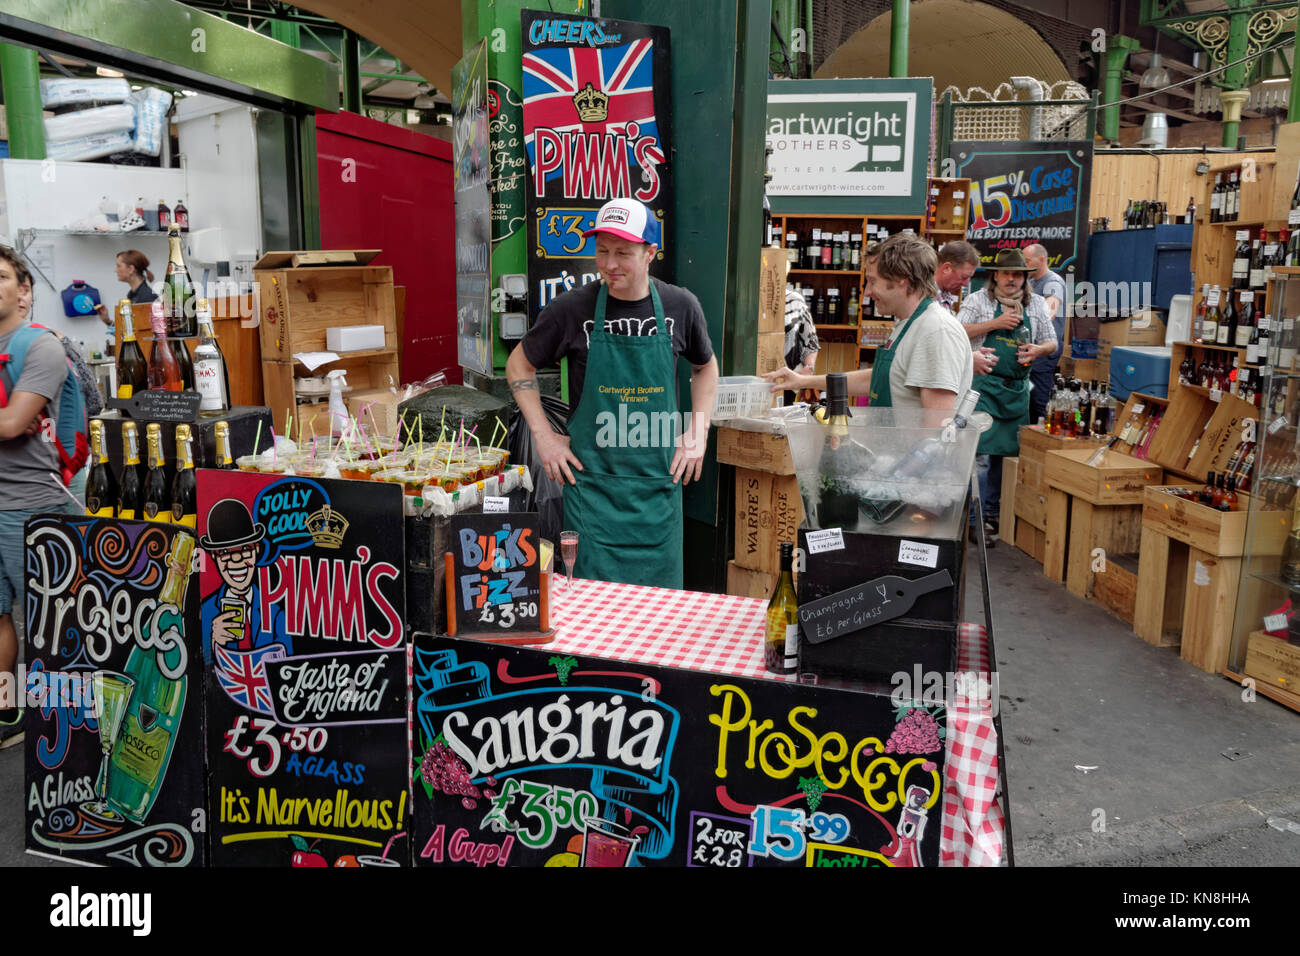 Boroughs market, market stall with alcehol, Sangria, Prosecco, wine, London, UK - Stock Image